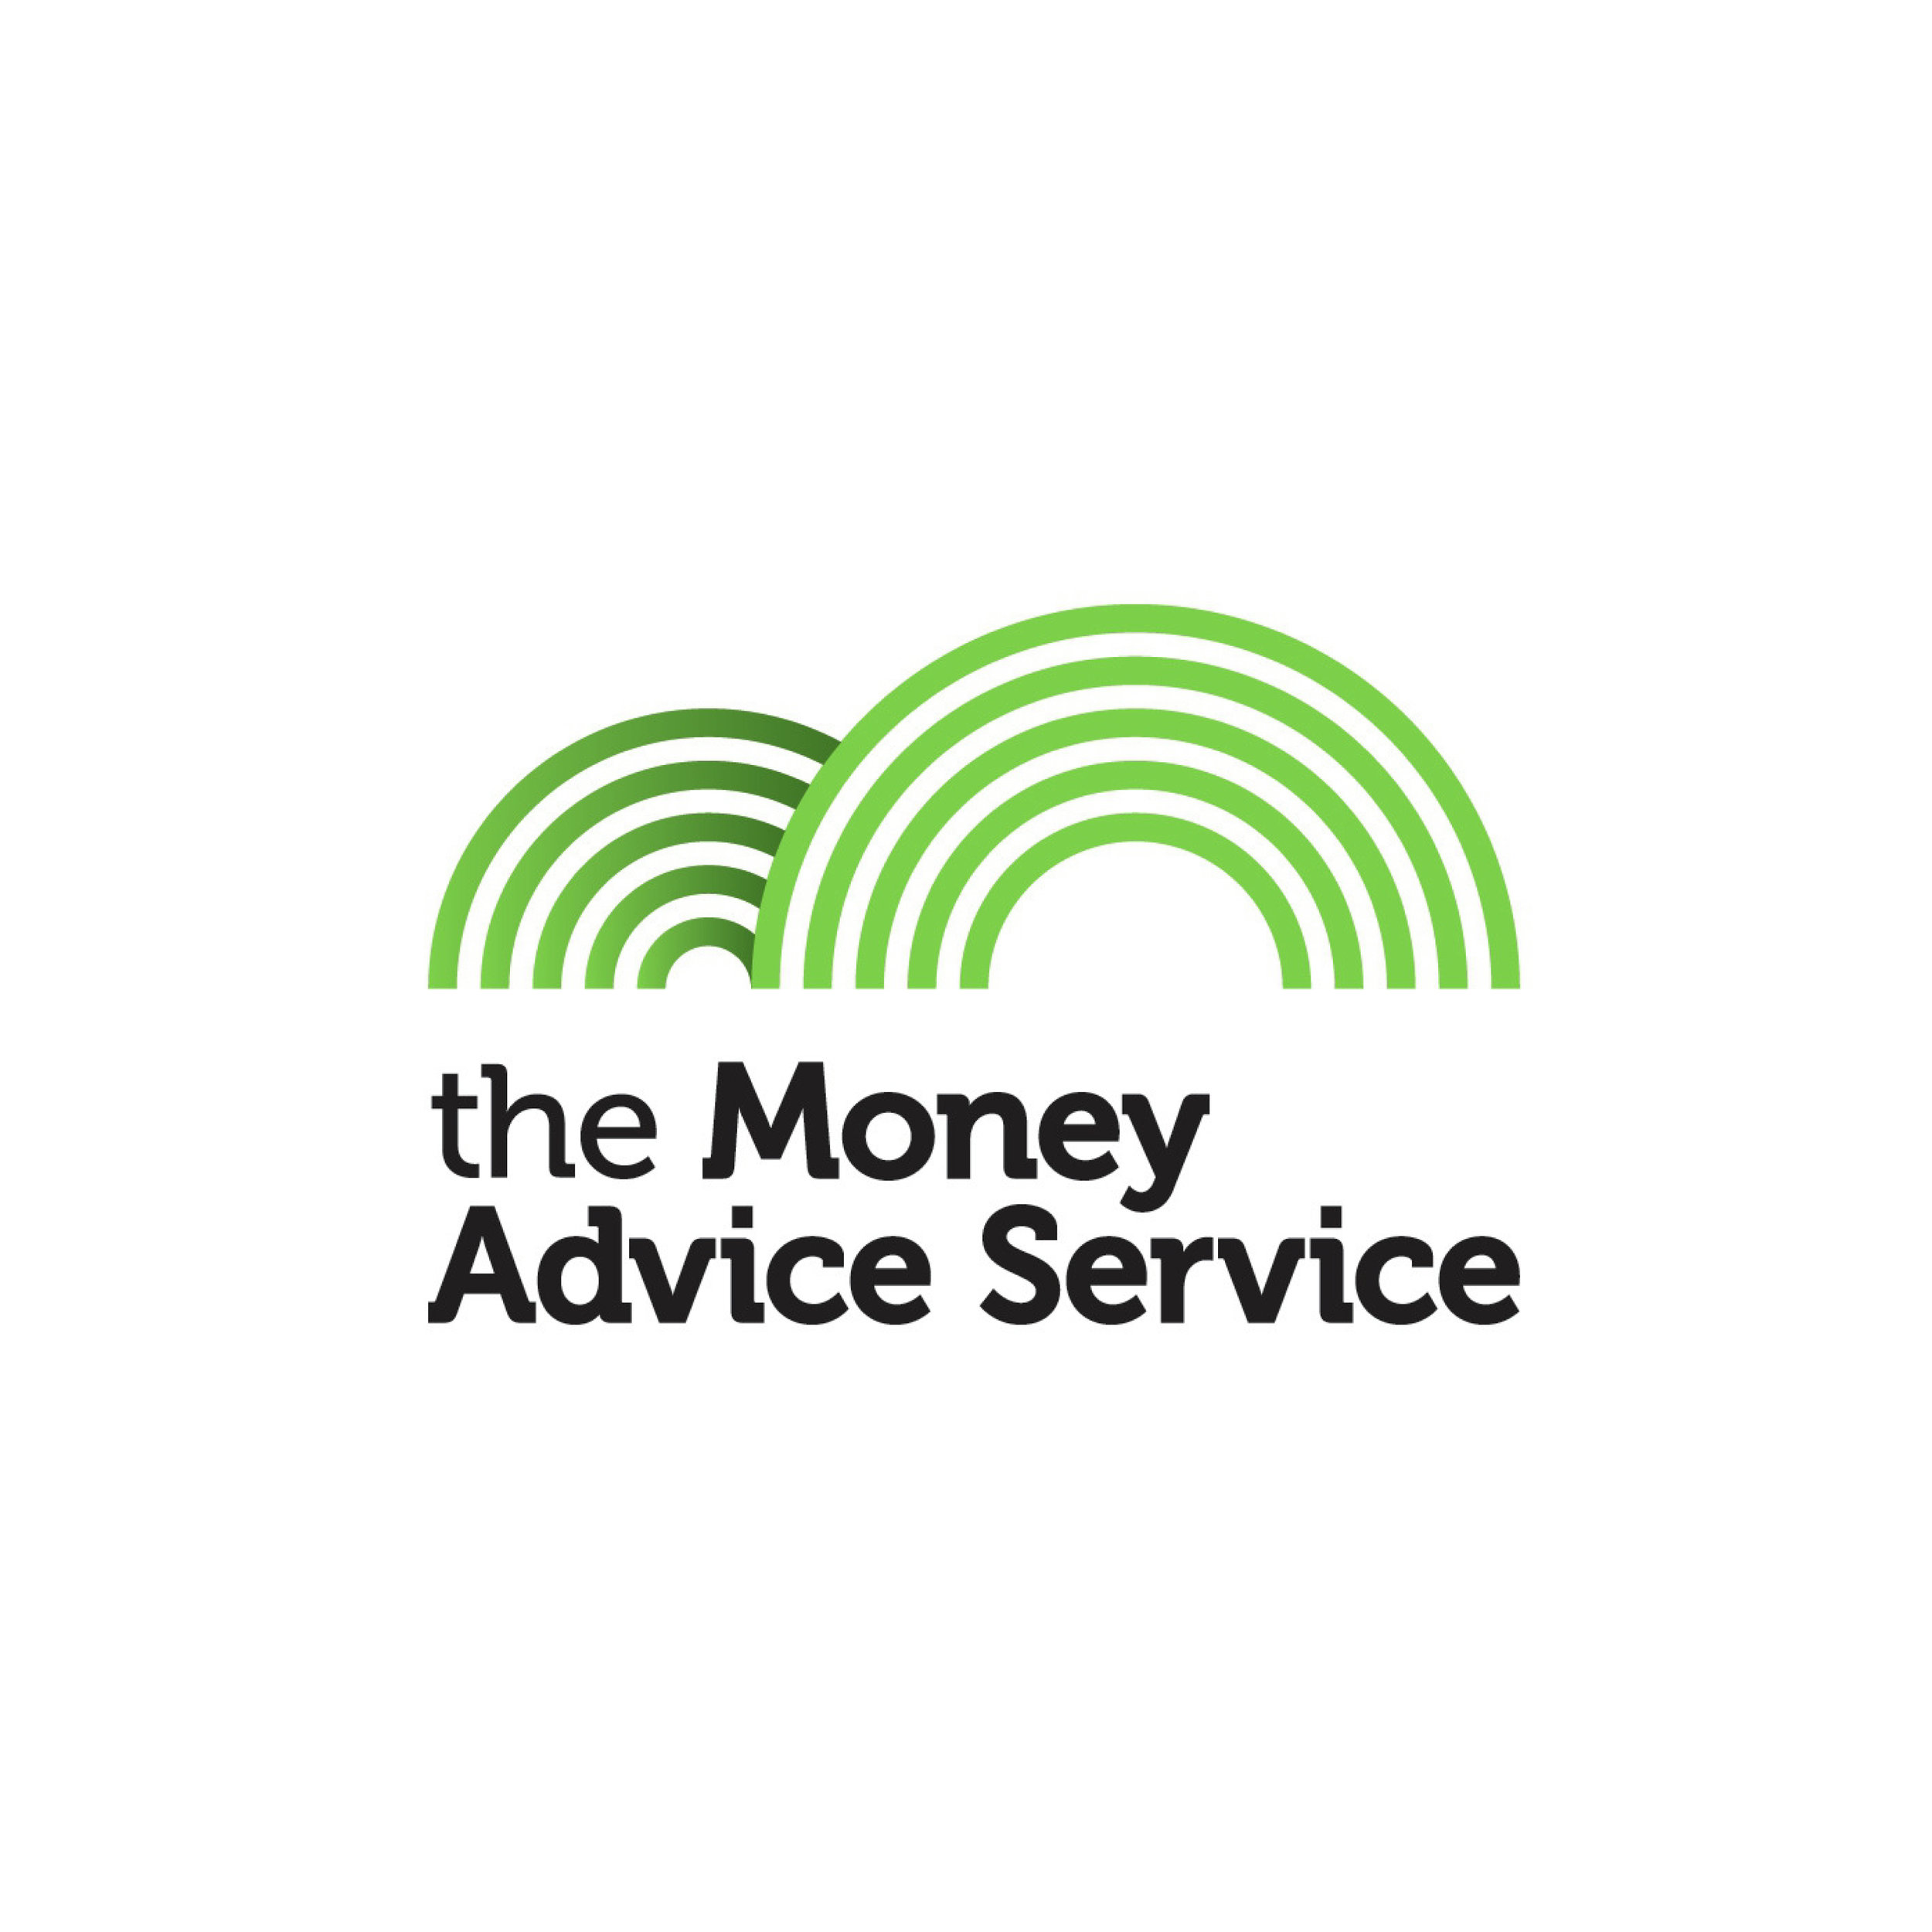 The Money Advice Service website.jpg